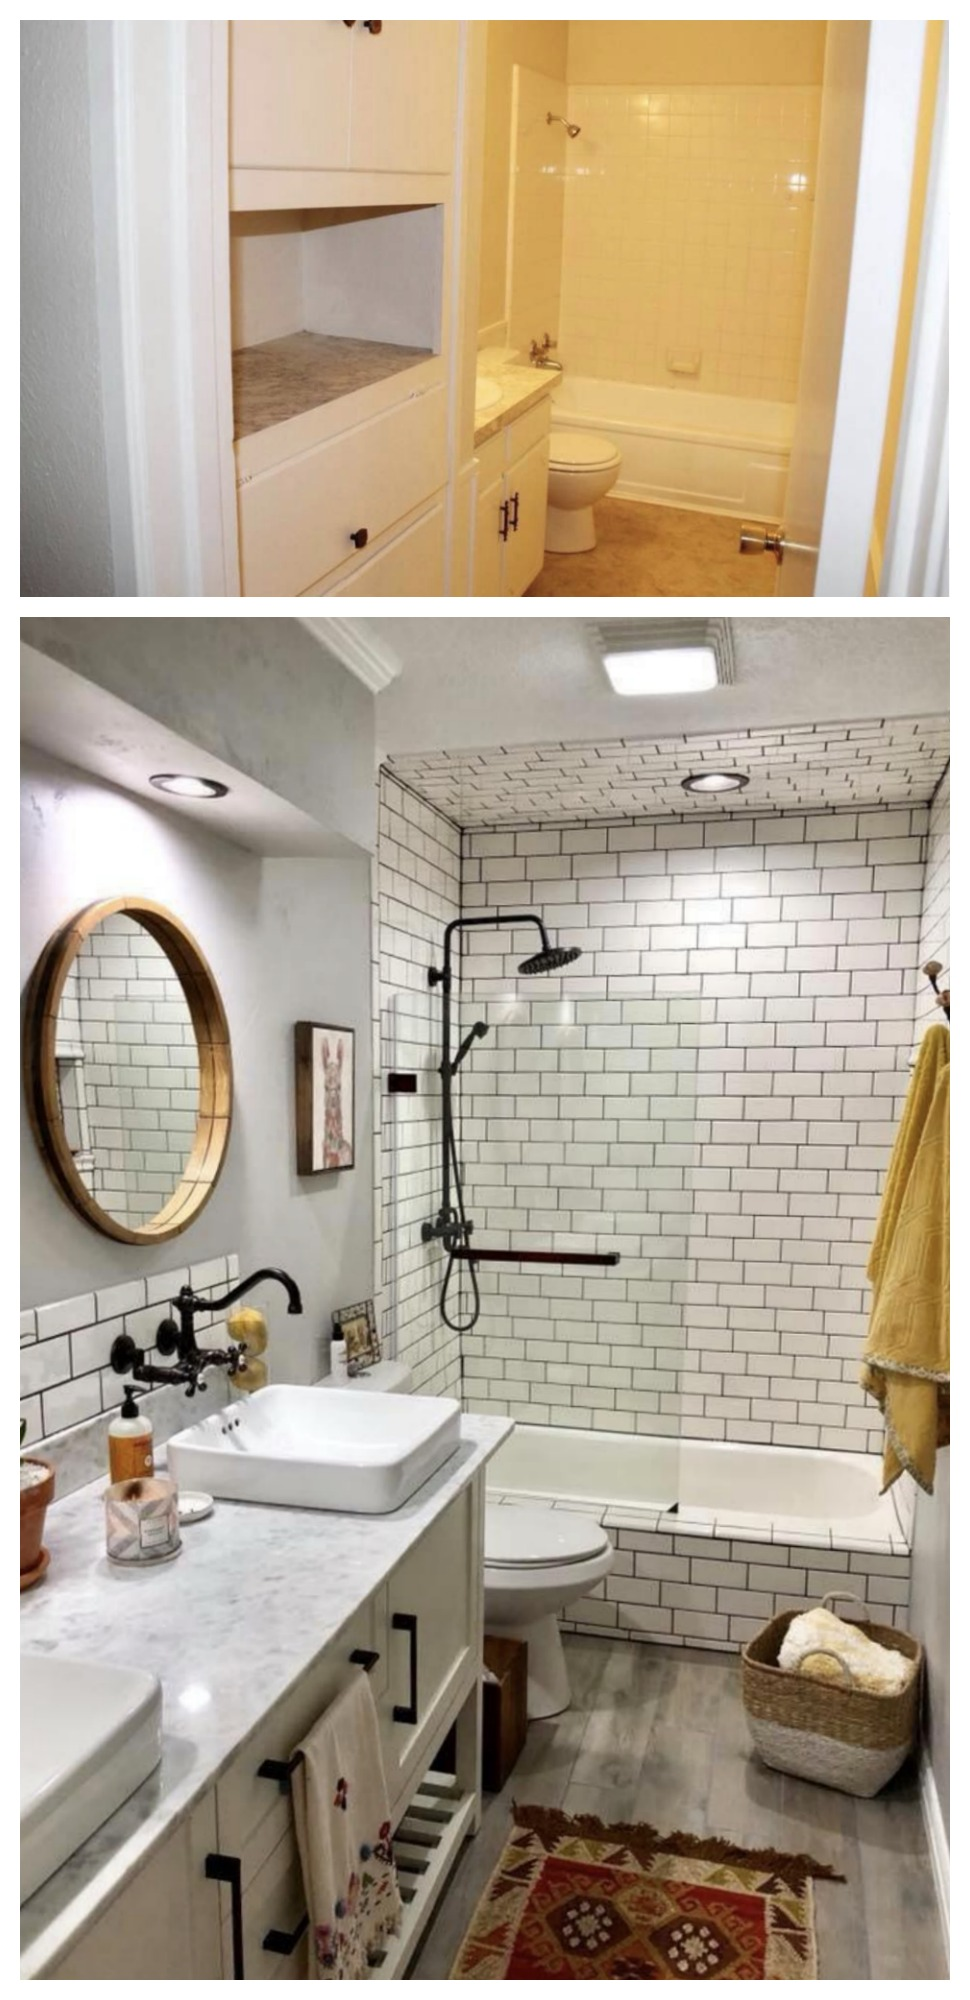 Bathroom BEFORE and AFTER!